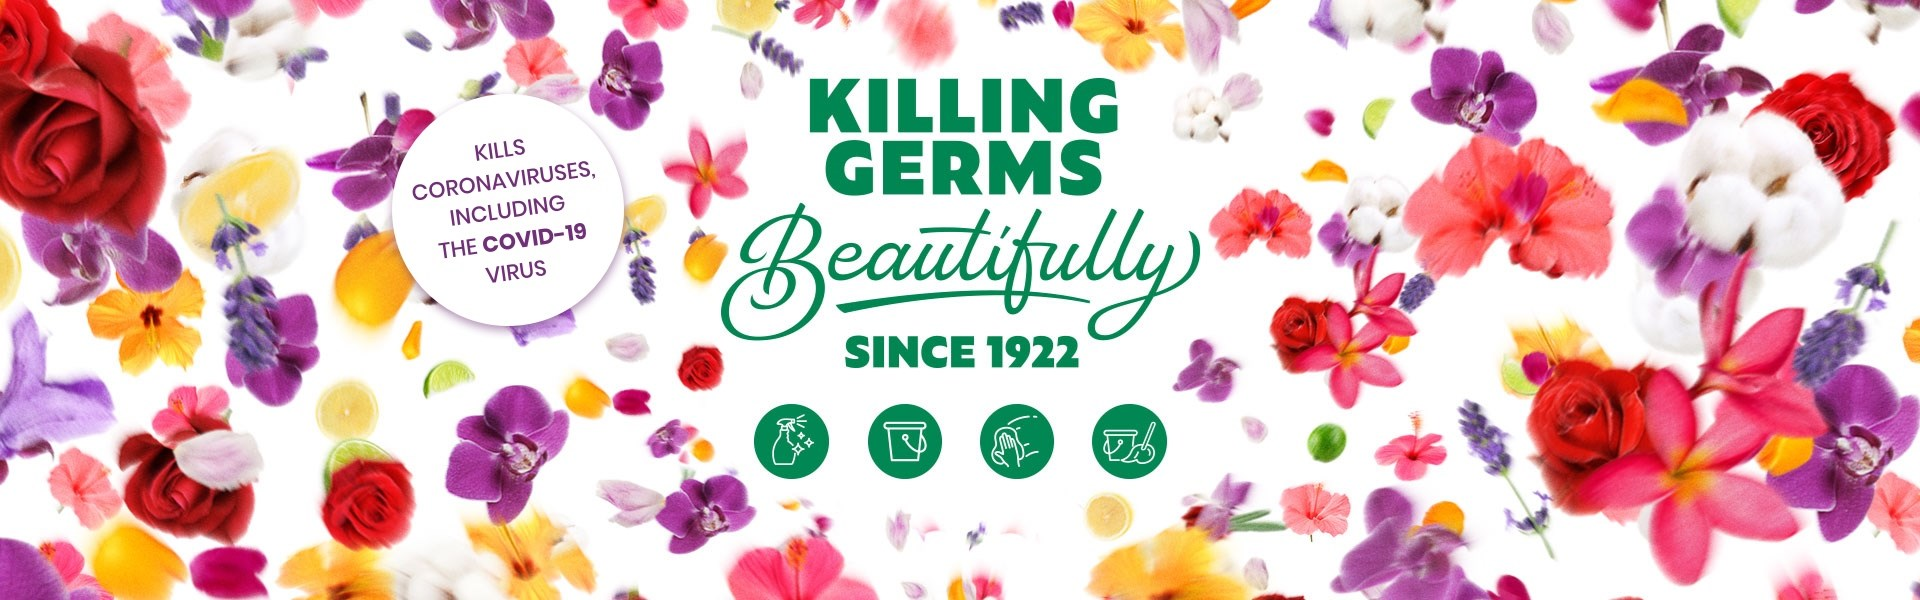 Killing Germs Beautifully since 1922 banner desktop